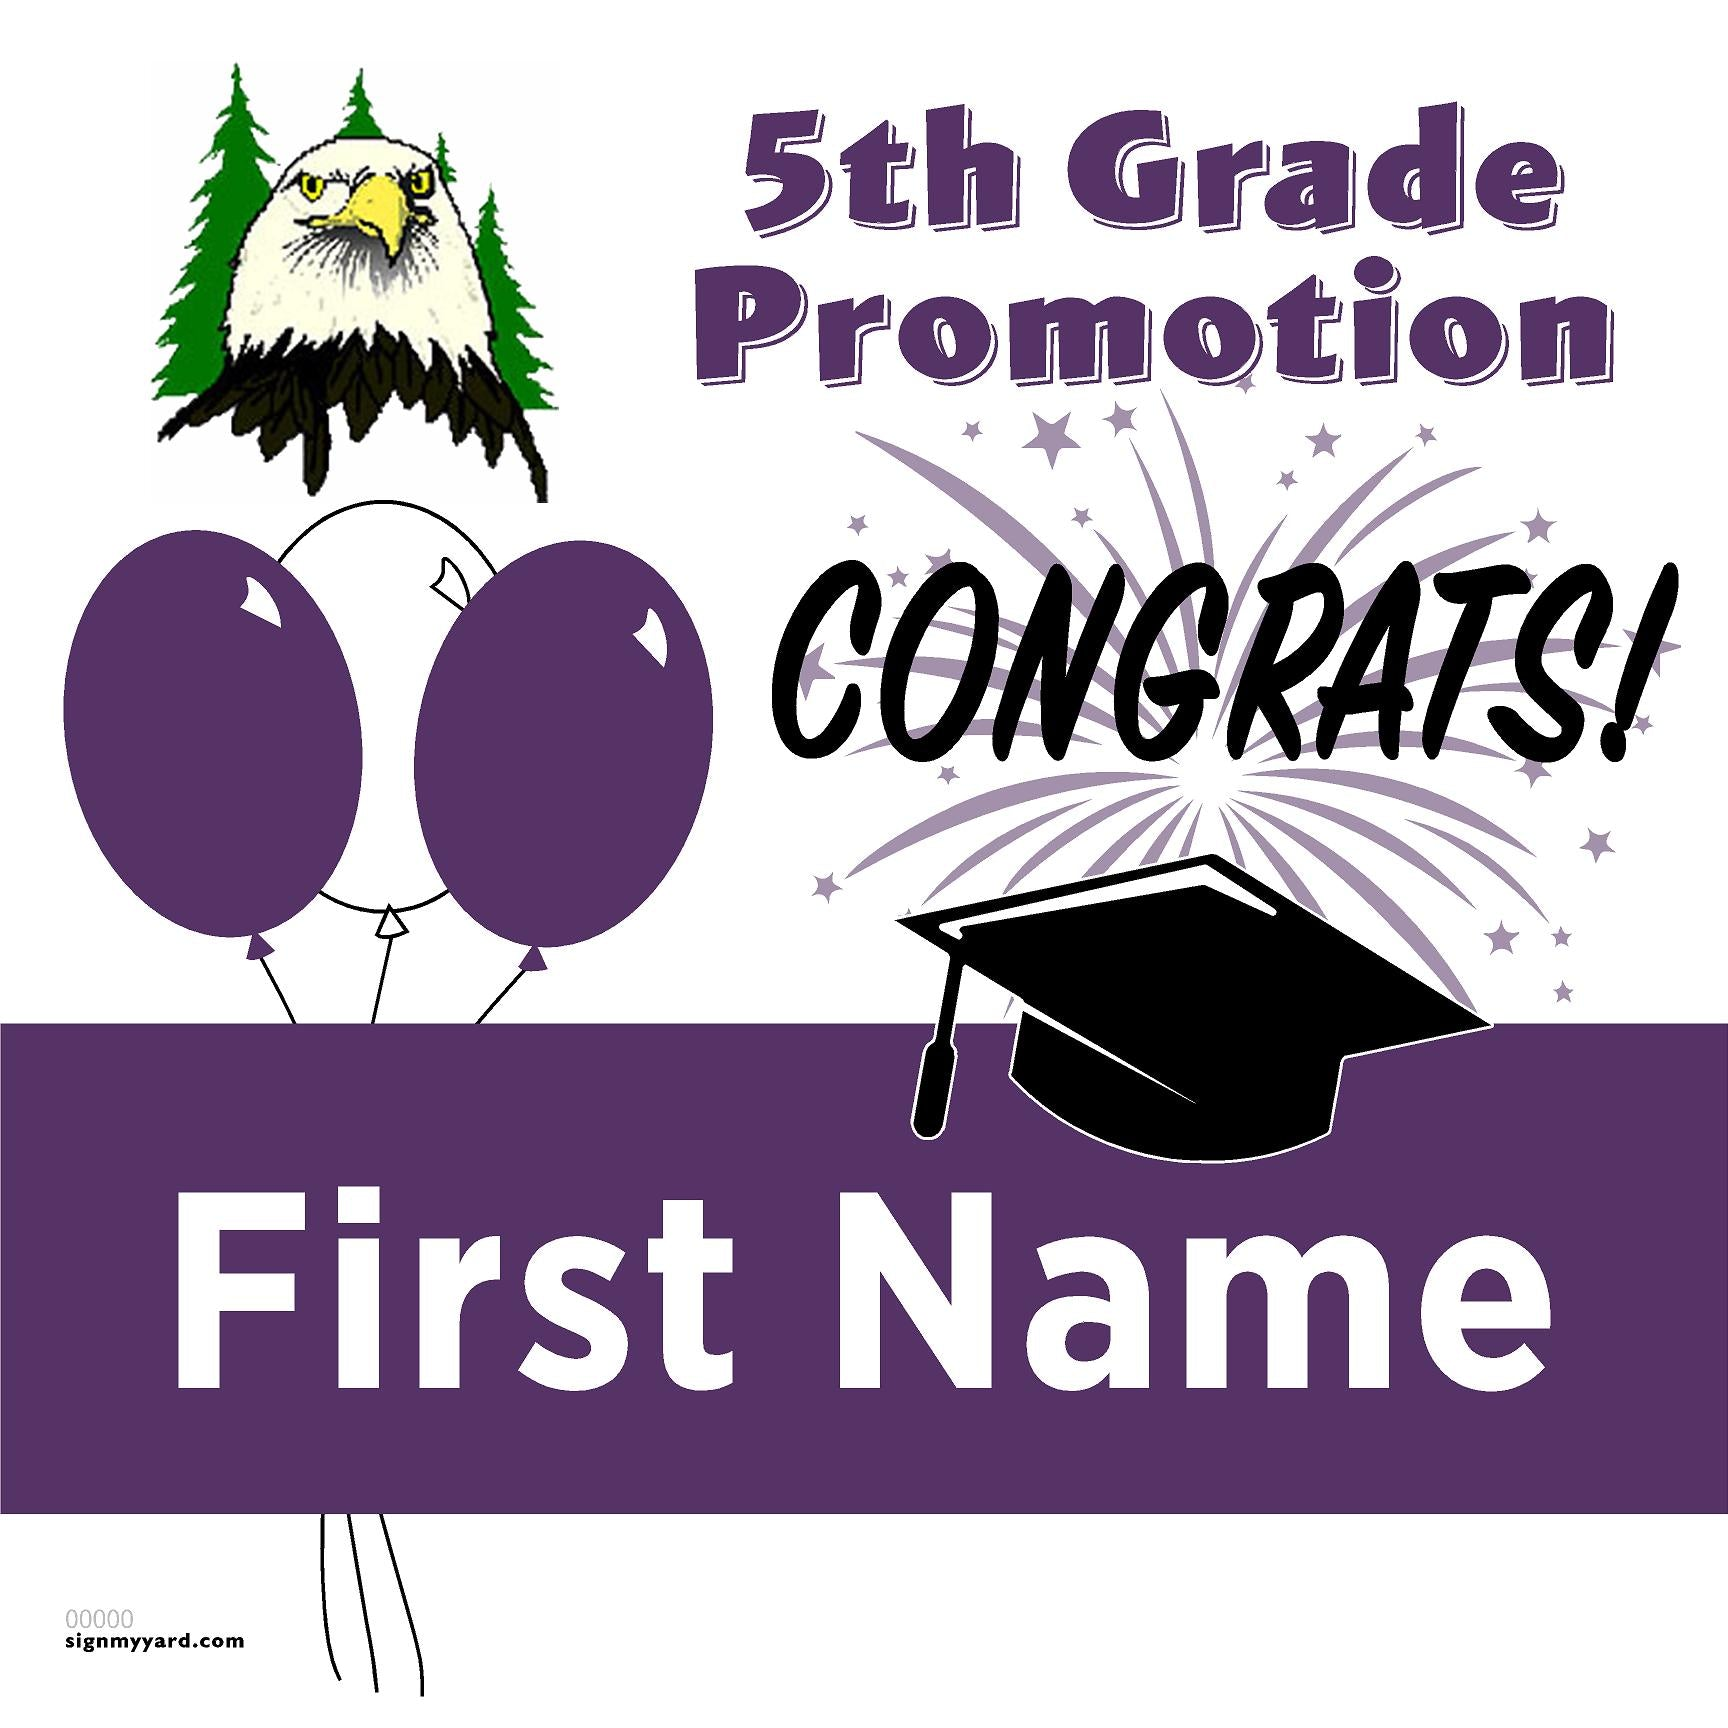 Morello Park Elementary School 5th Grade Promotion 24x24 #shineon2027 Yard Sign (Option A)